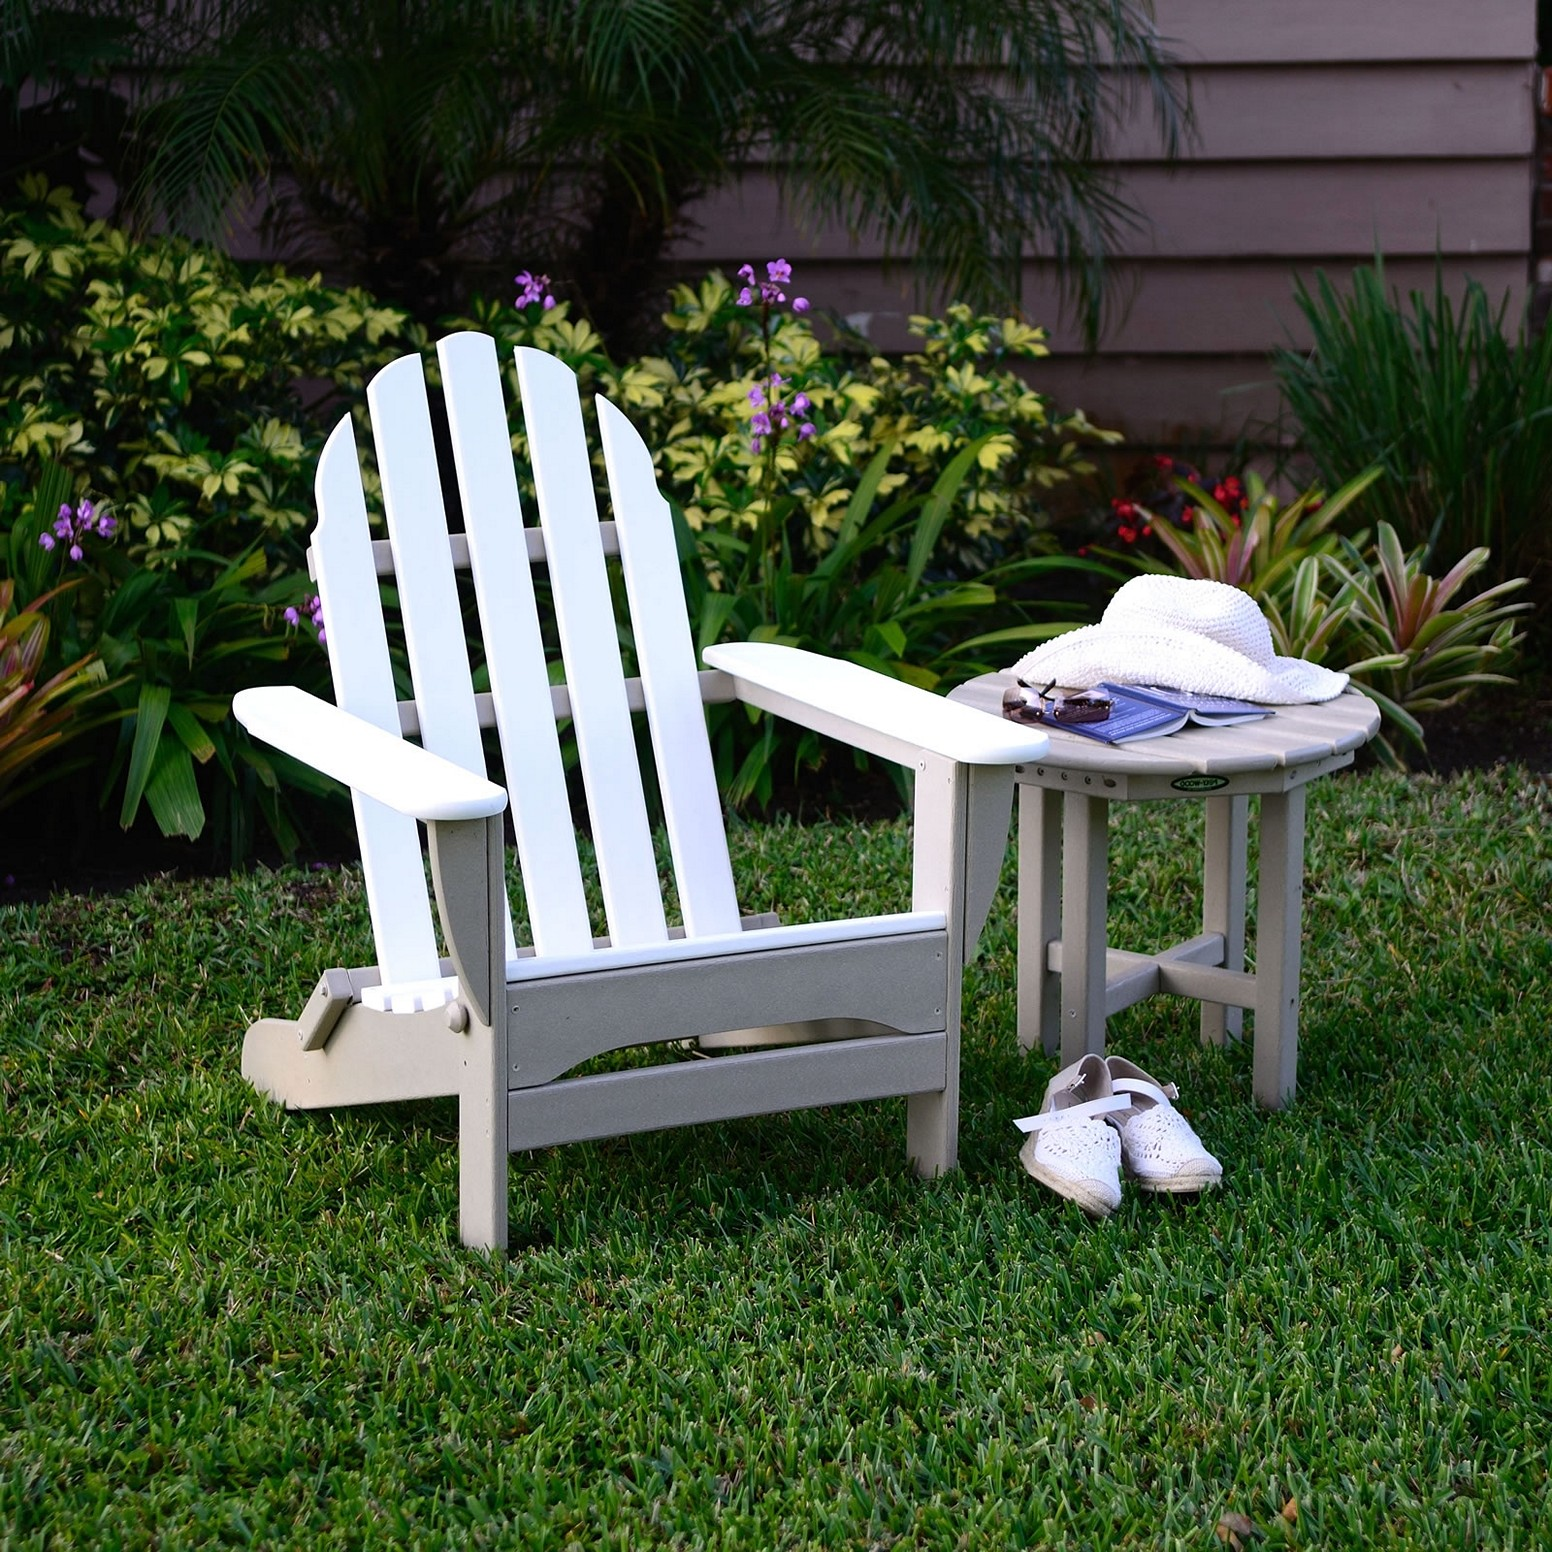 elegant theme in house by using white plastic adirondack chairs myrtlehocklemeier. Black Bedroom Furniture Sets. Home Design Ideas